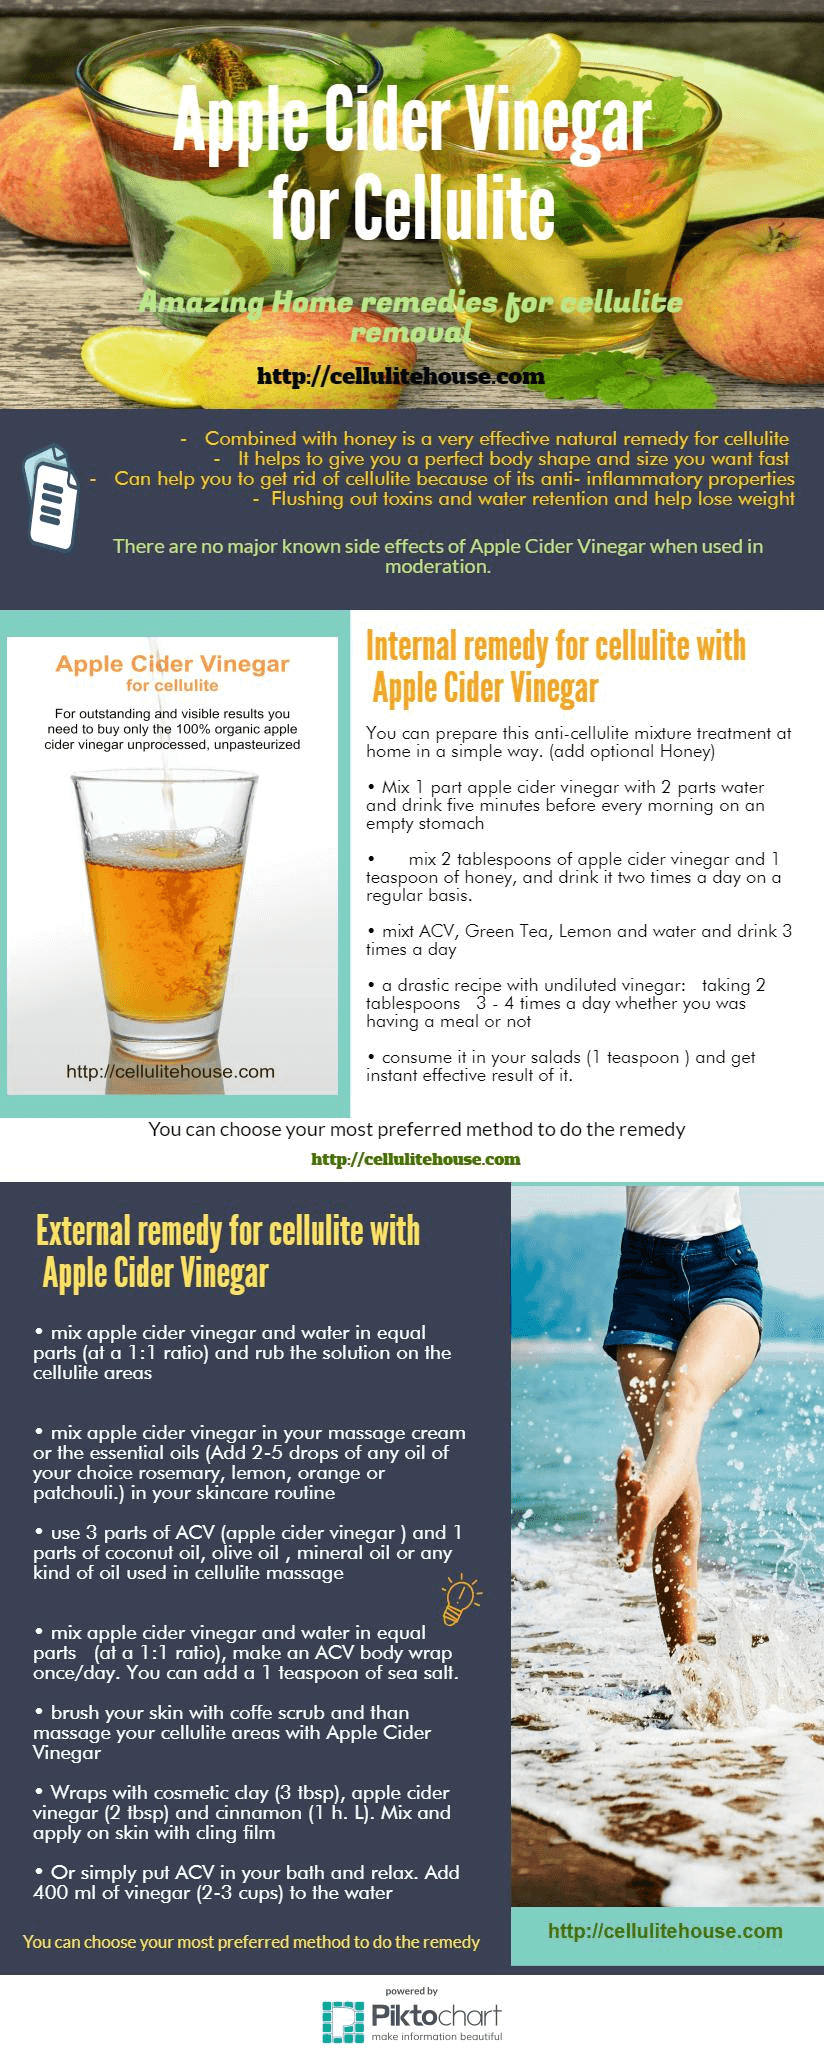 Apple Cider Vinegar for cellulite infographic from Cellulite House